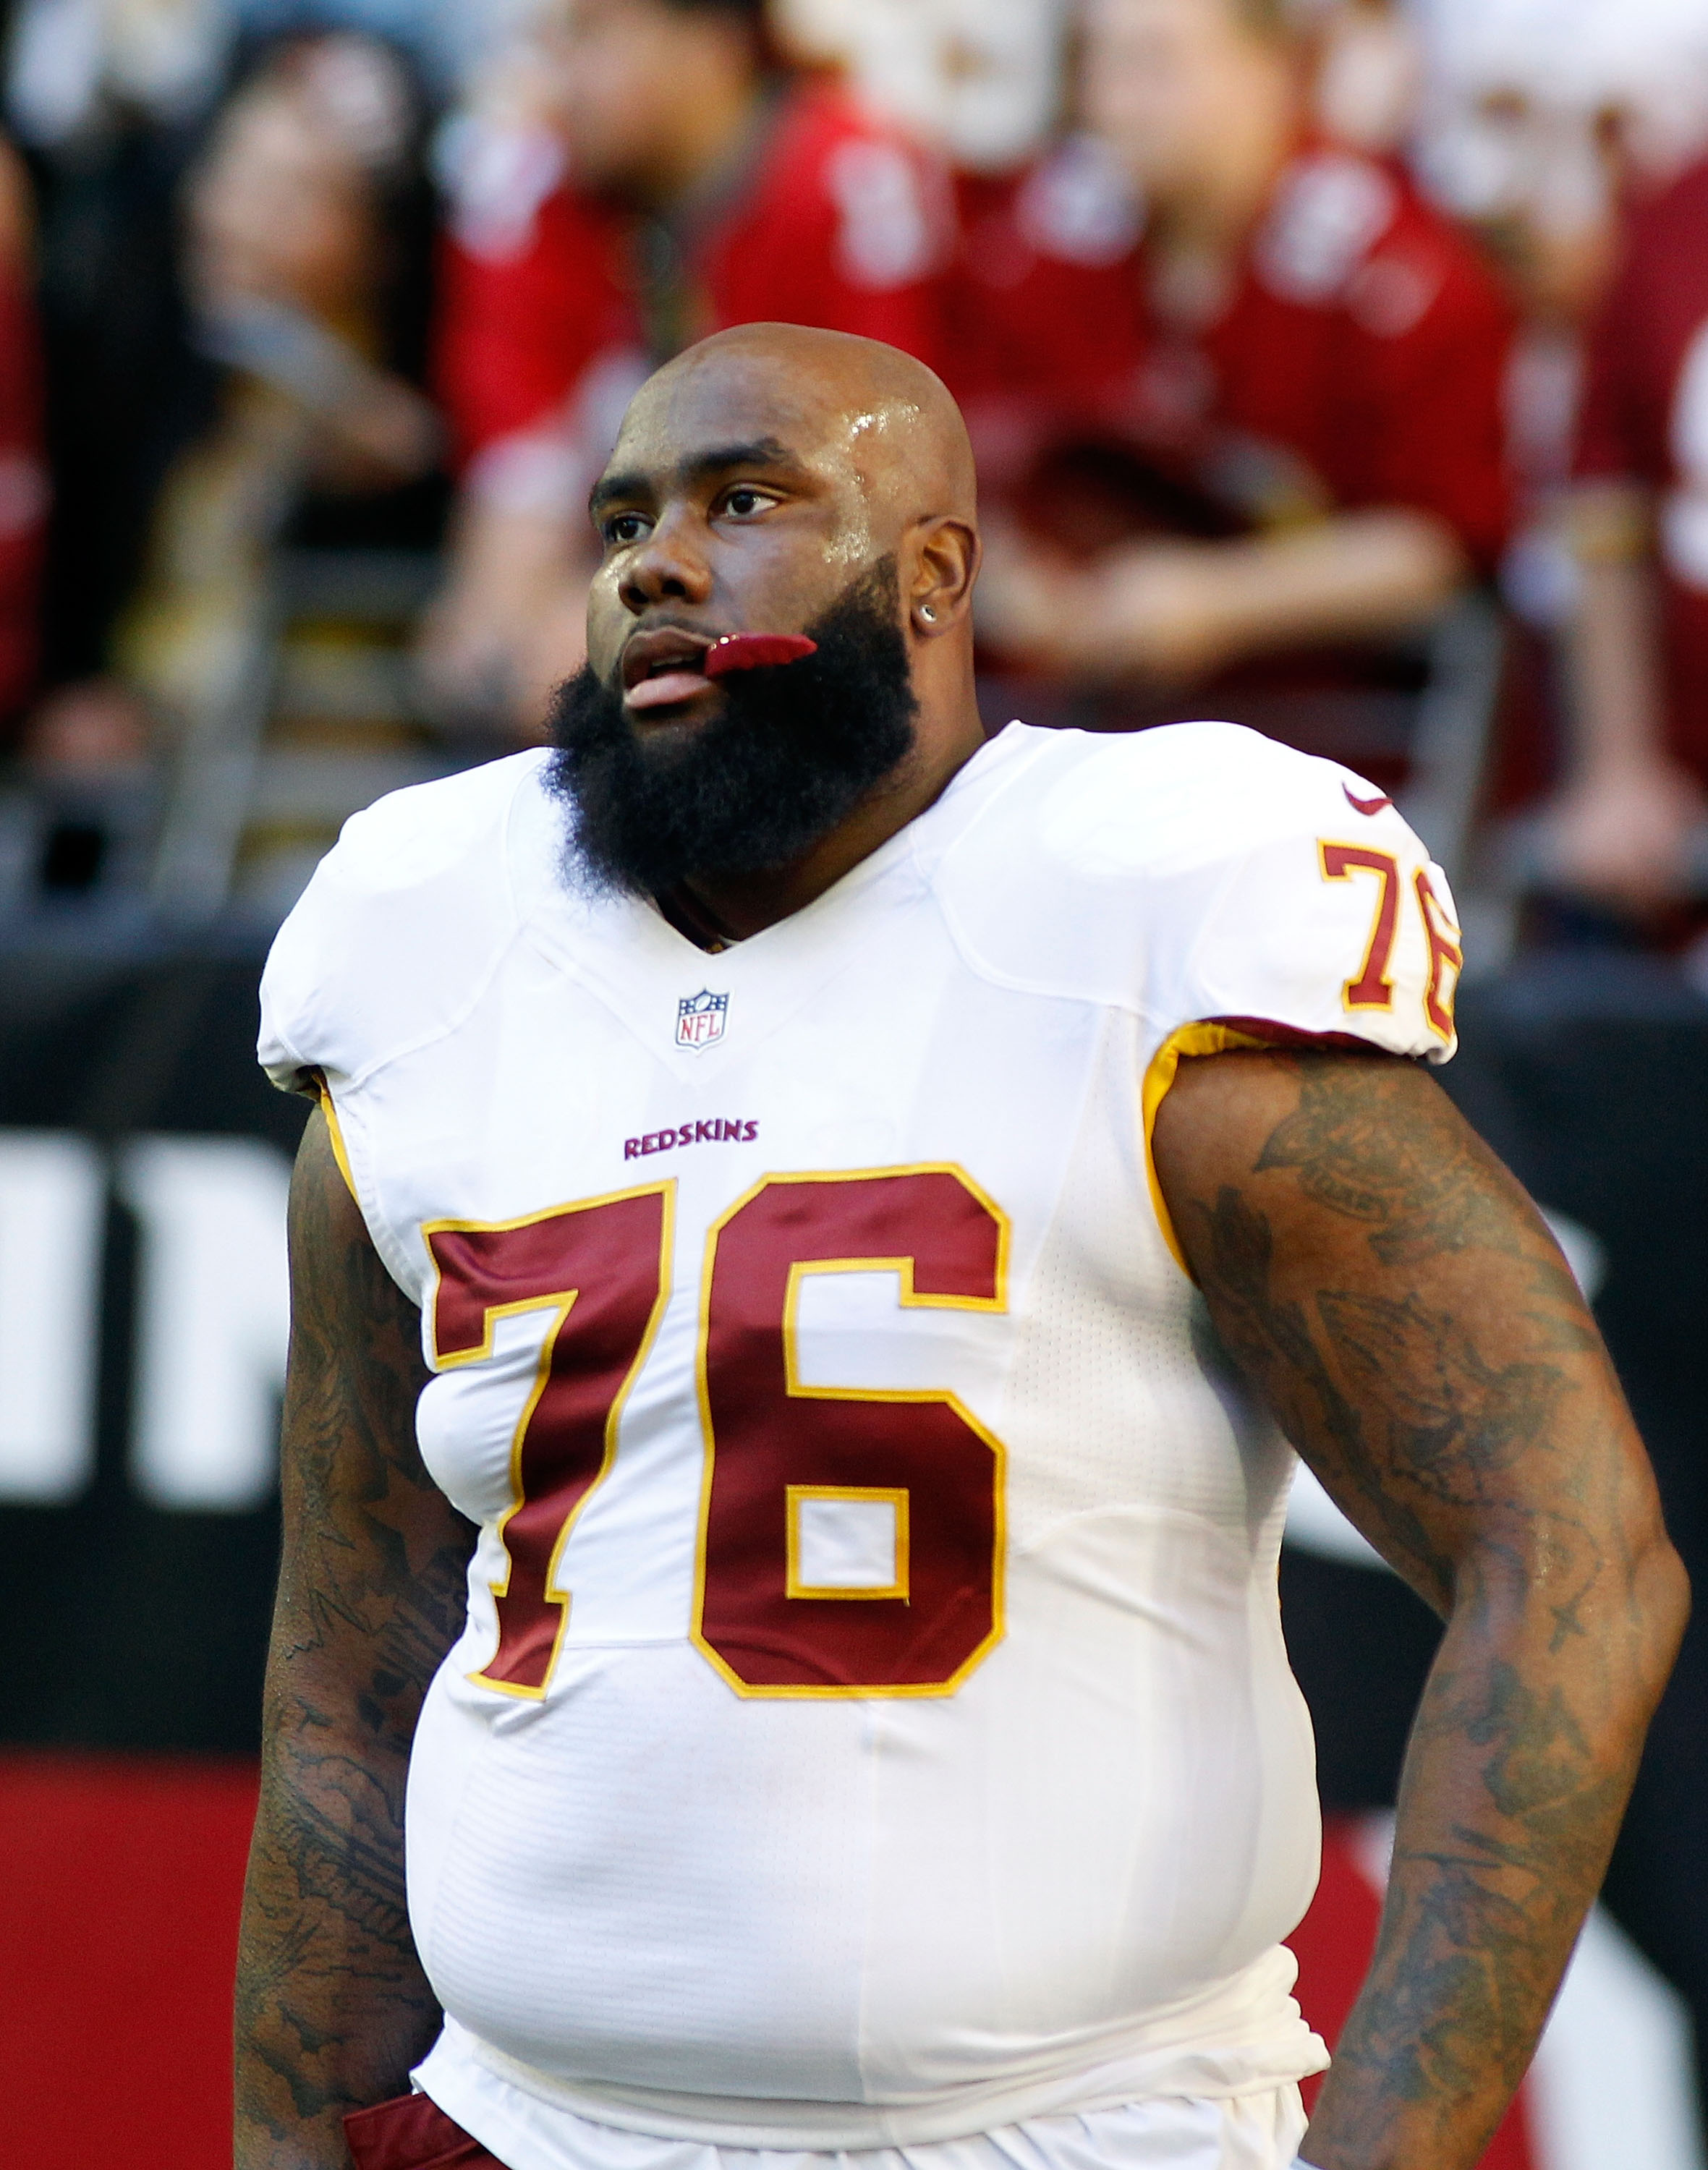 Redskins Week 3 Stock Report Galette shines in long awaited